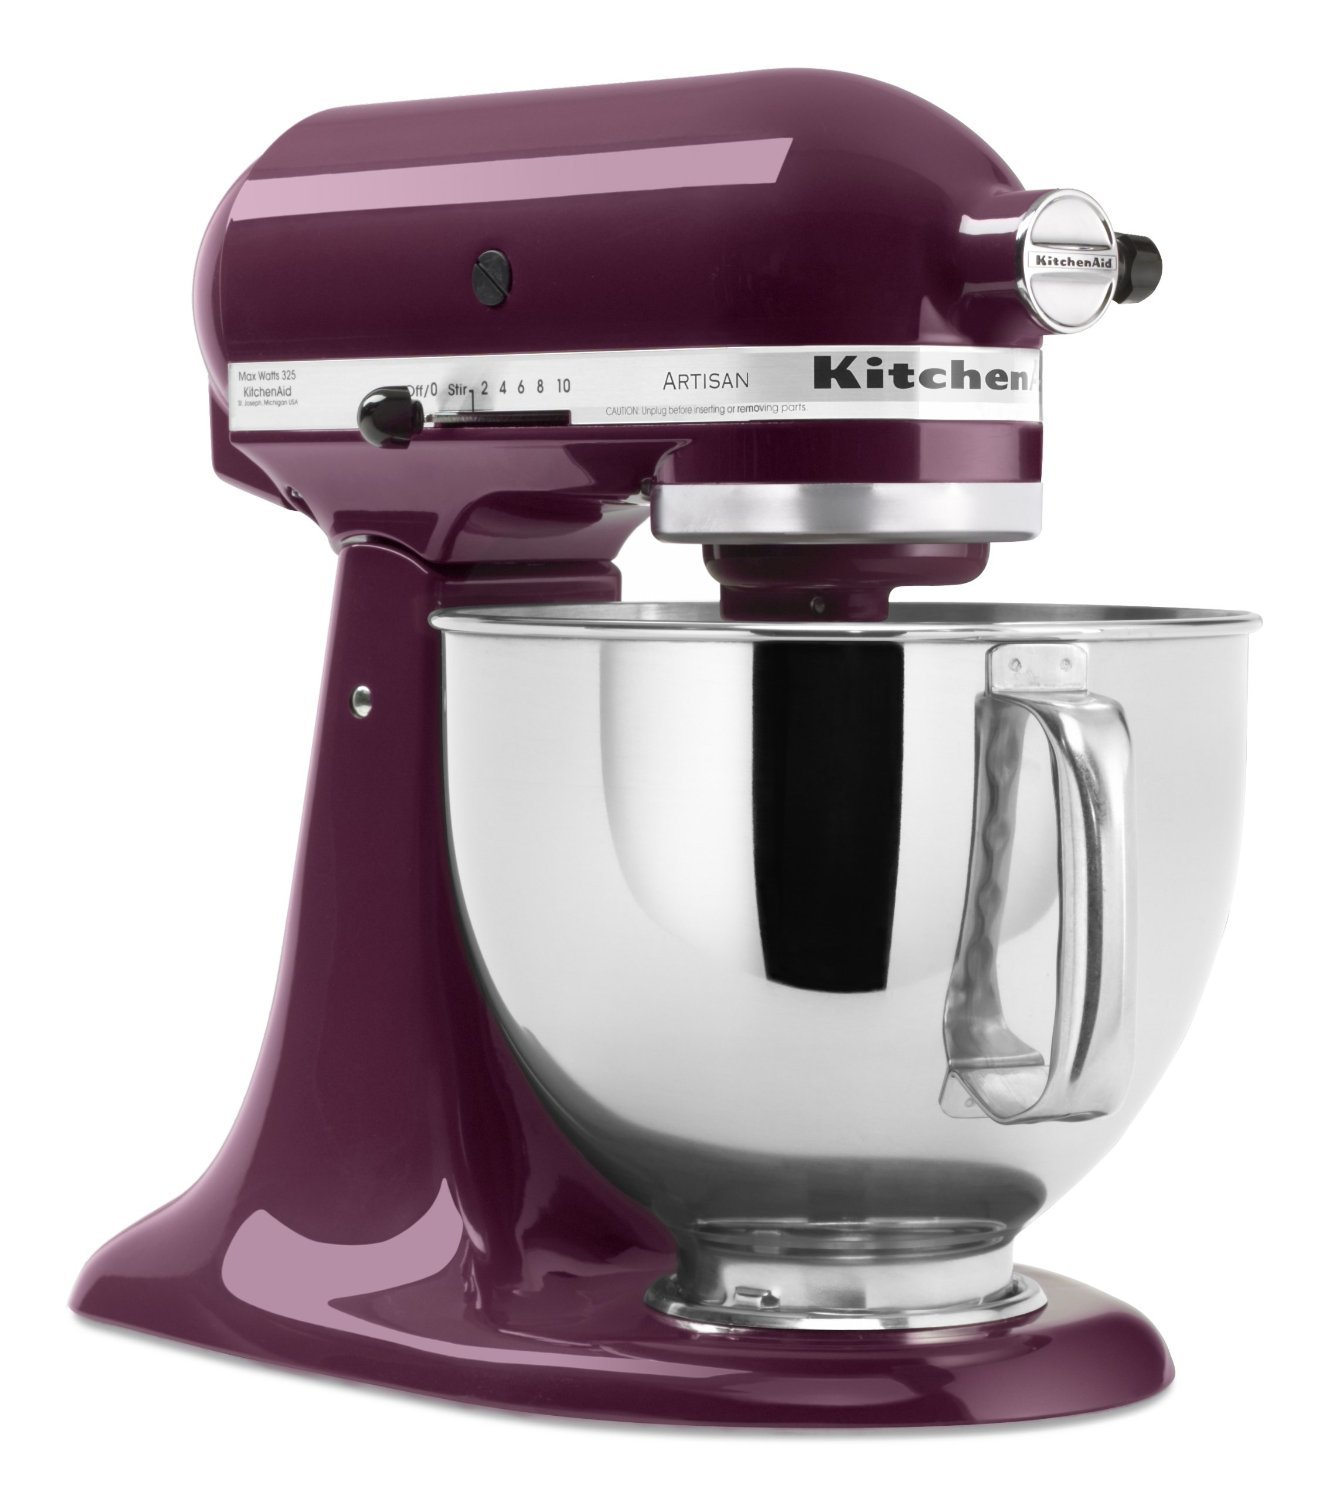 Gentil Amazon.com: KitchenAid Artisan 5KSM150PSEAC Almond Cream 220 Volt   Will  Not Work In The USA: Electric Stand Mixers: Kitchen U0026 Dining